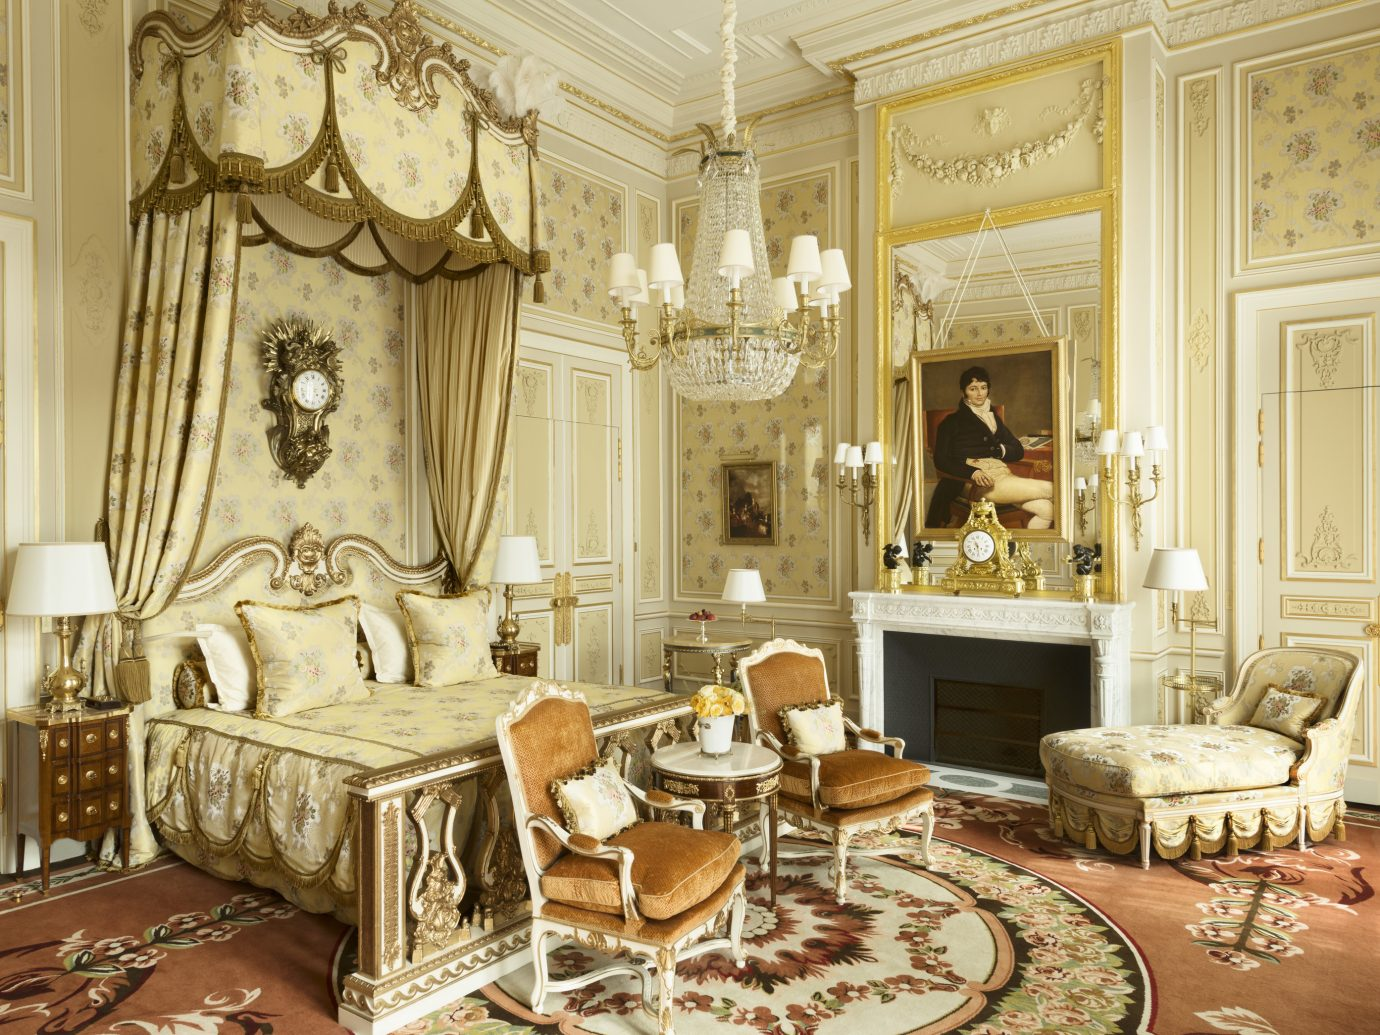 Bedroom at Ritz Paris